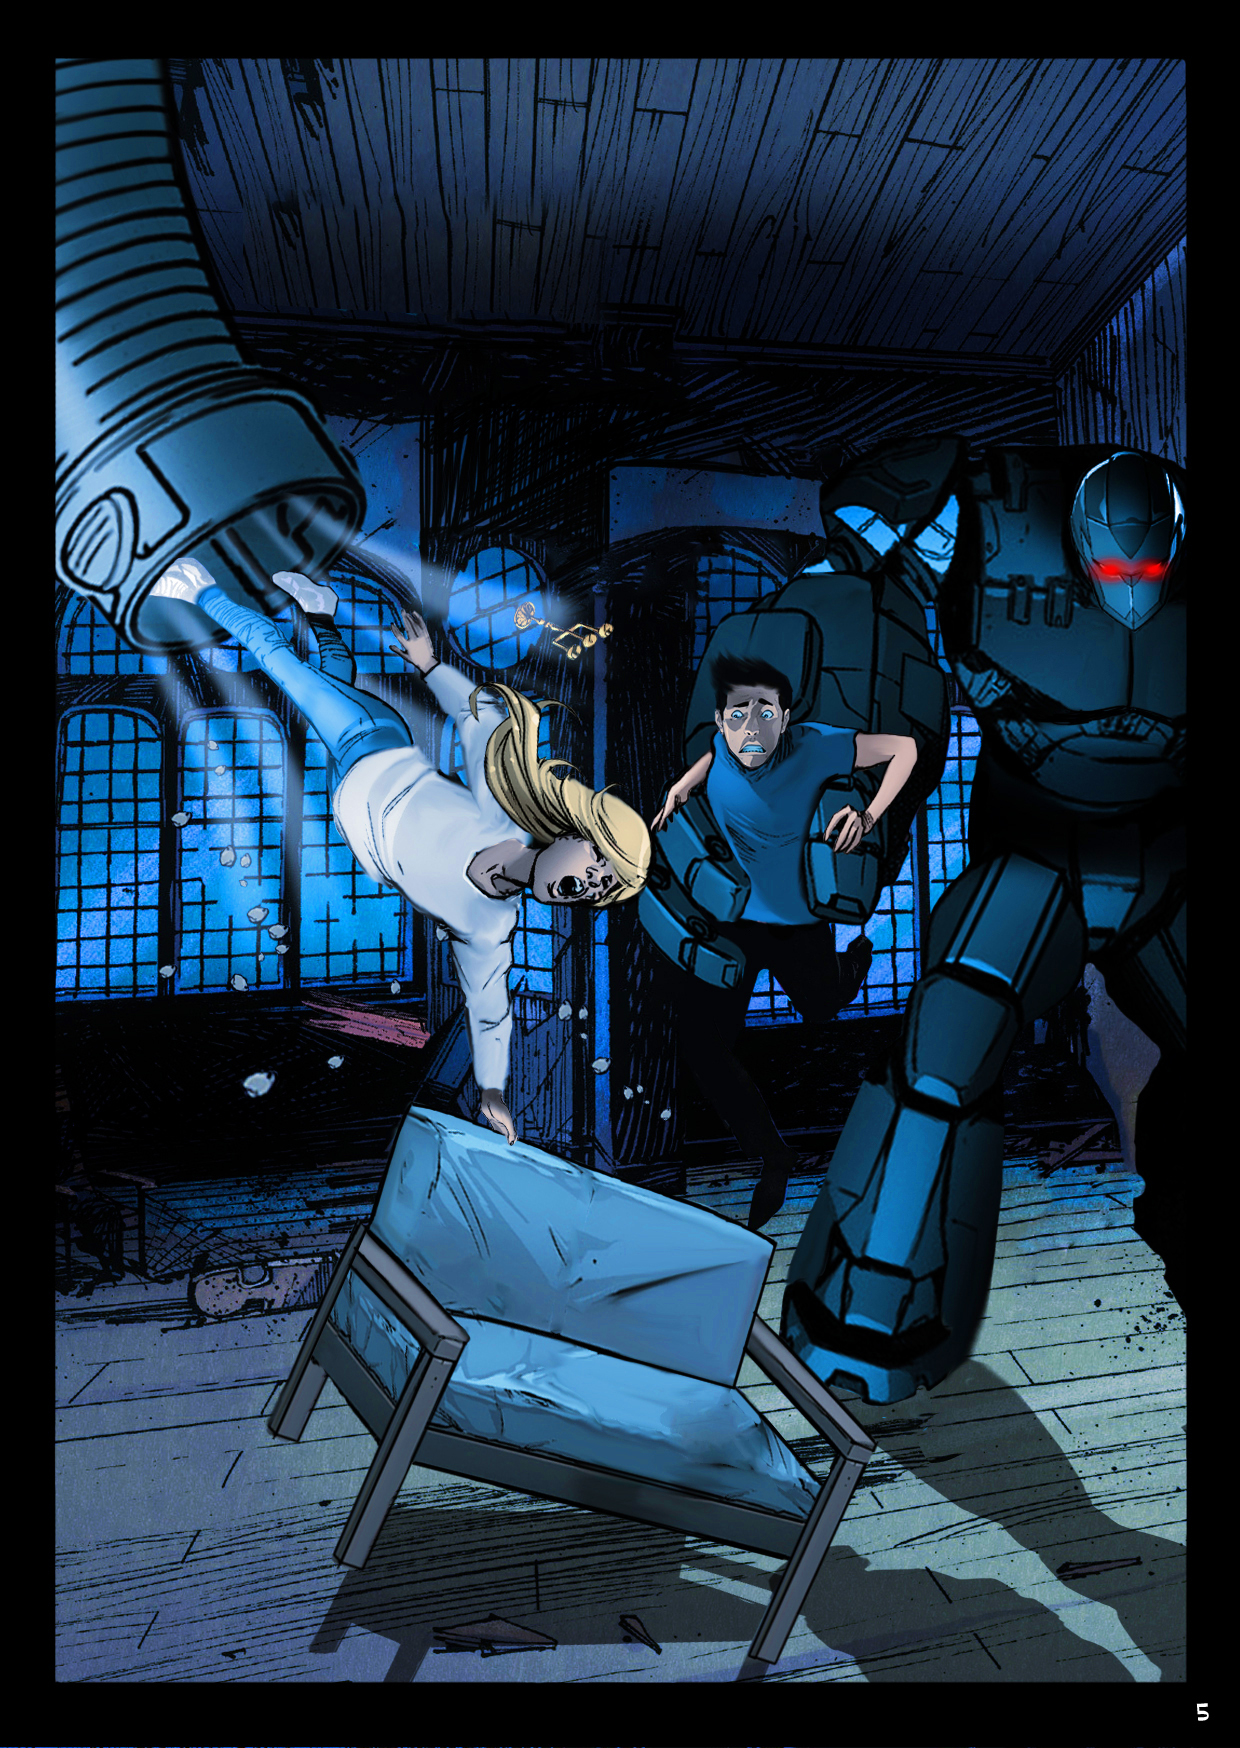 Mike is grabbed by Zheleznor the giant robot while Pamela fights not to be sucked up  into the bowels of the asylum.